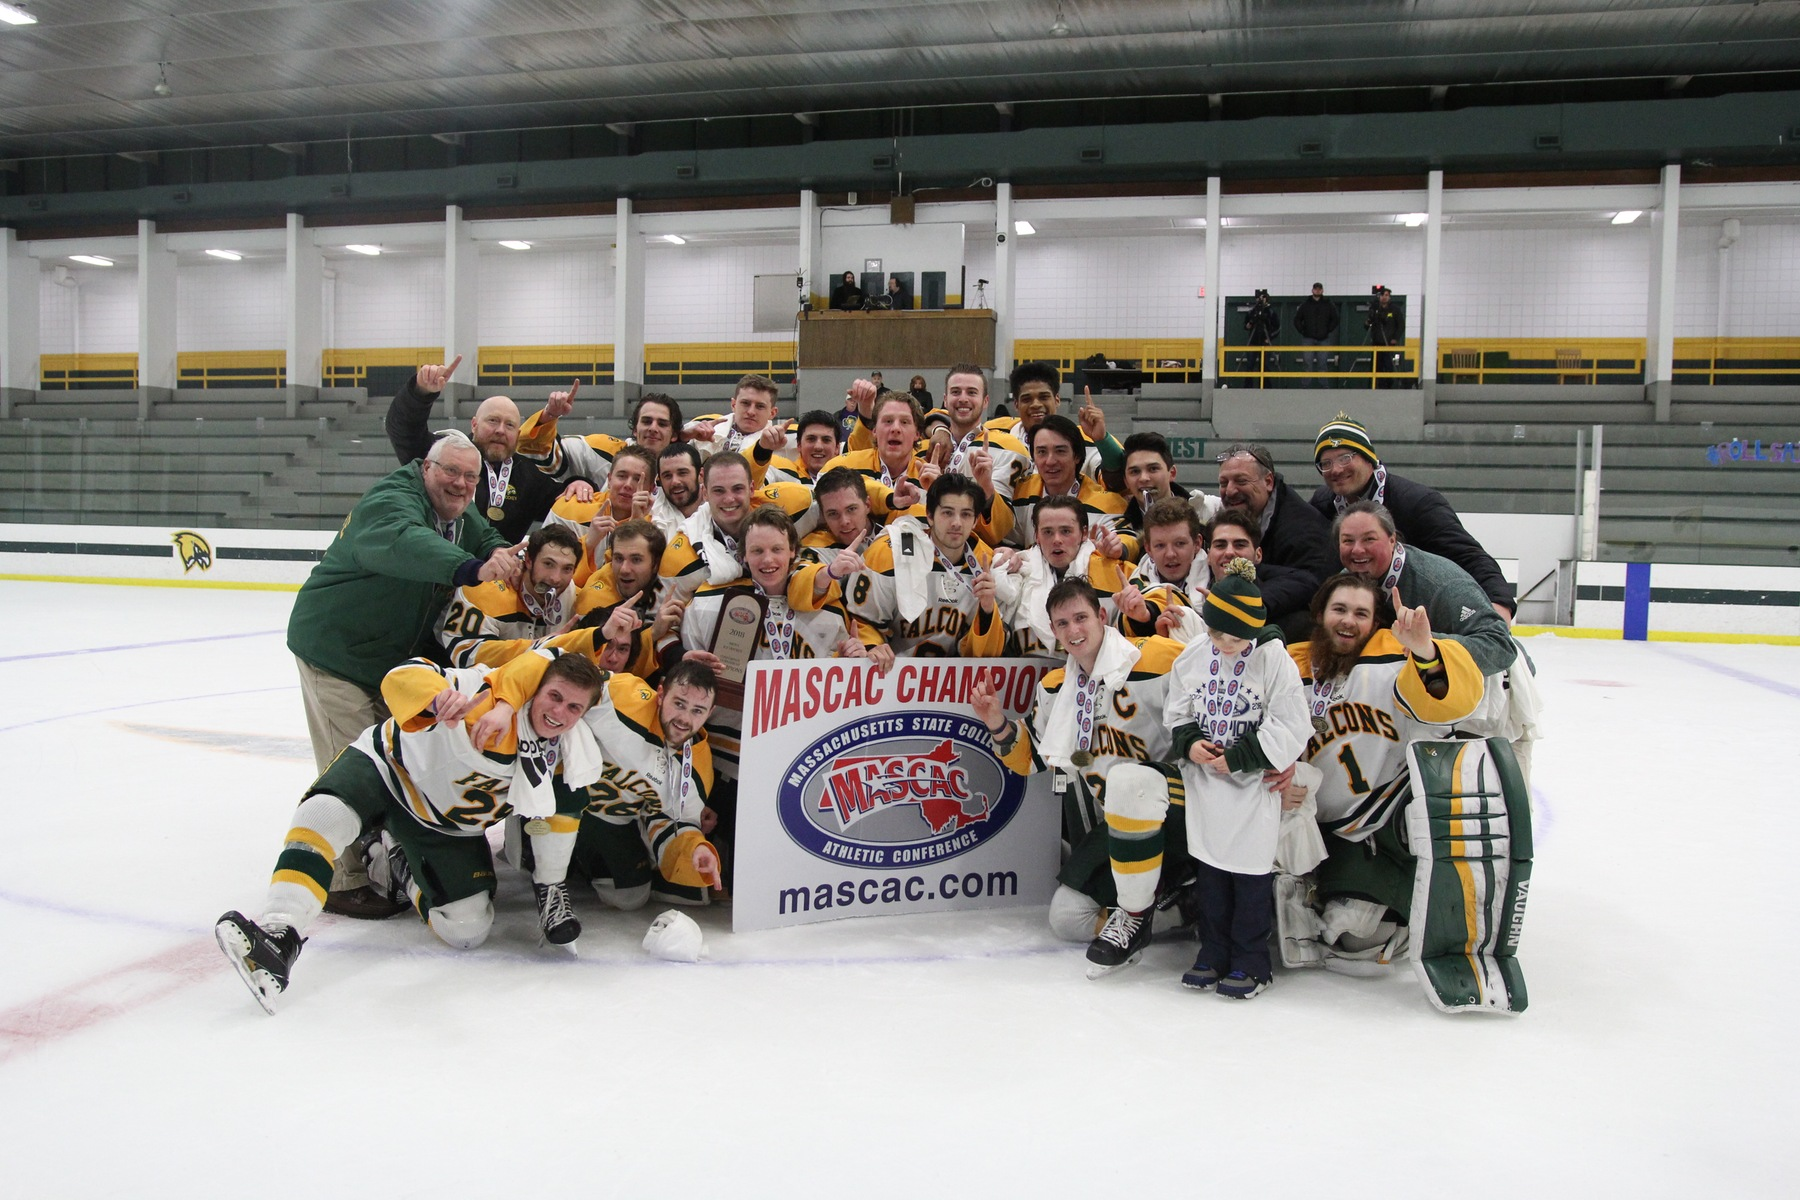 Falcons Capture MASCAC Crown With 2-0 Victory Over Corsairs